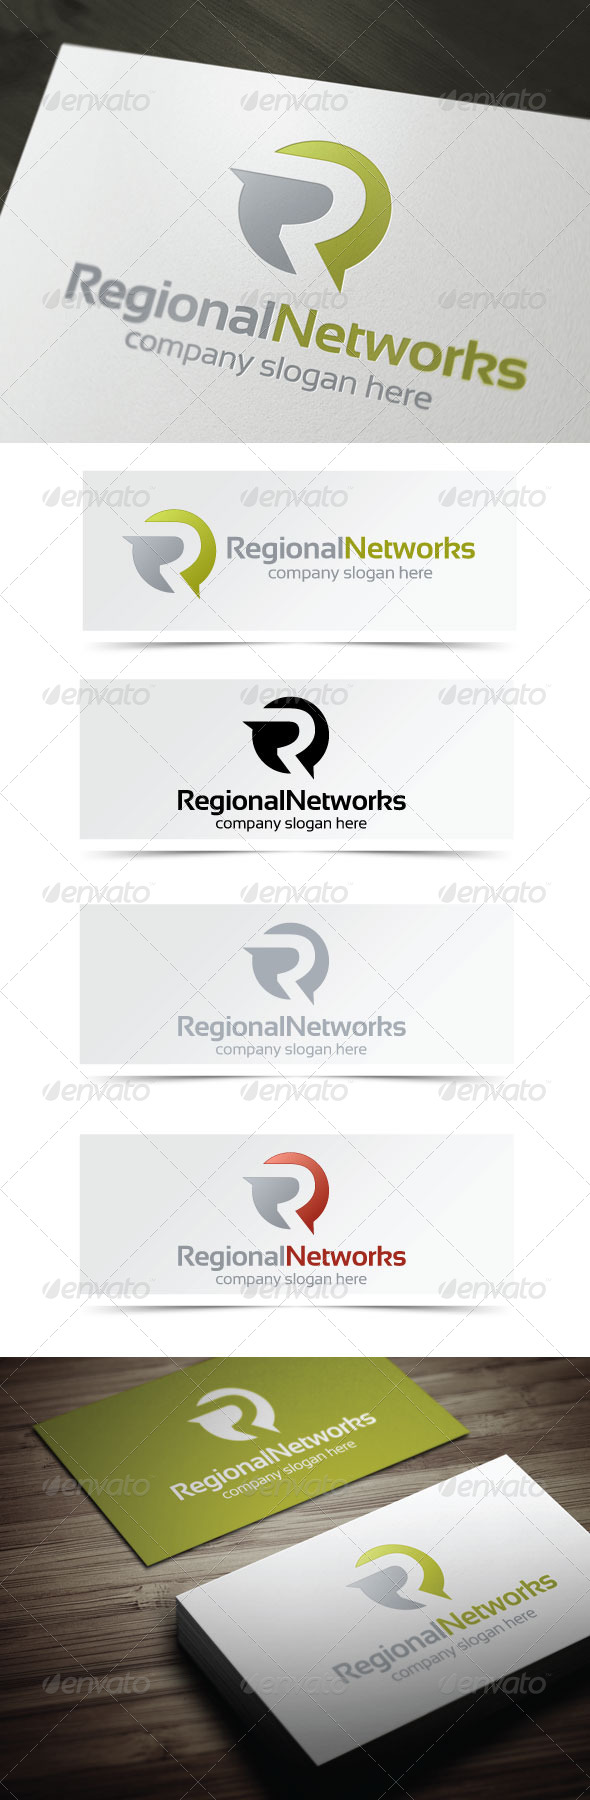 GraphicRiver Regional Networks 4135189